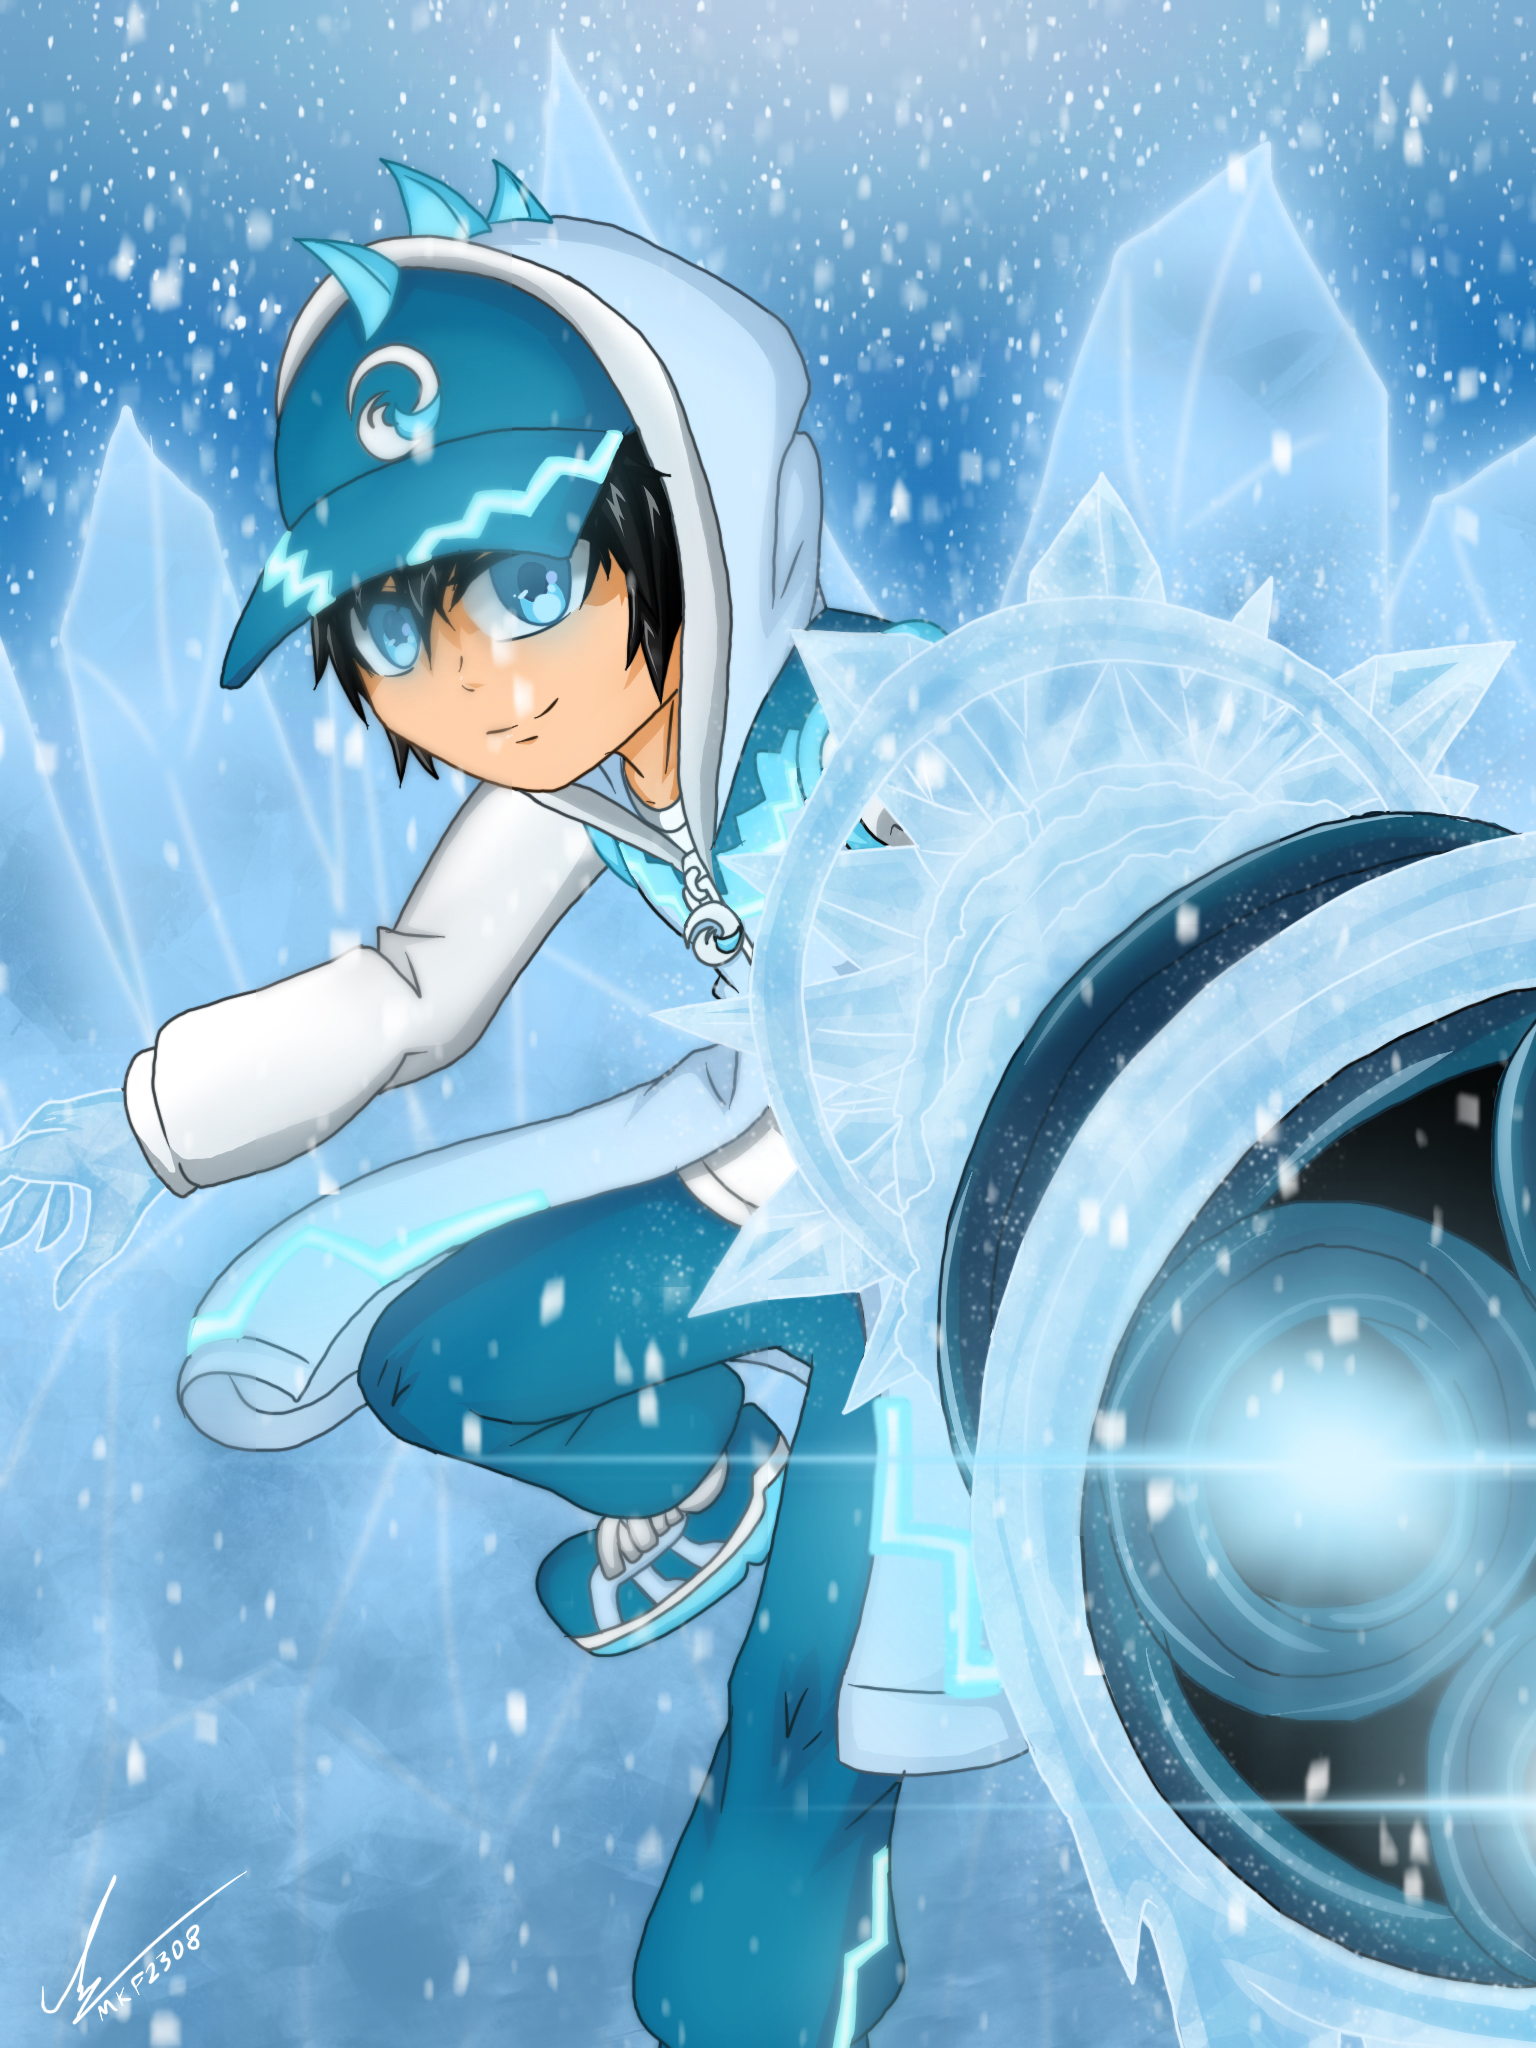 handphone wallpaper boboiboy ice - photo #1